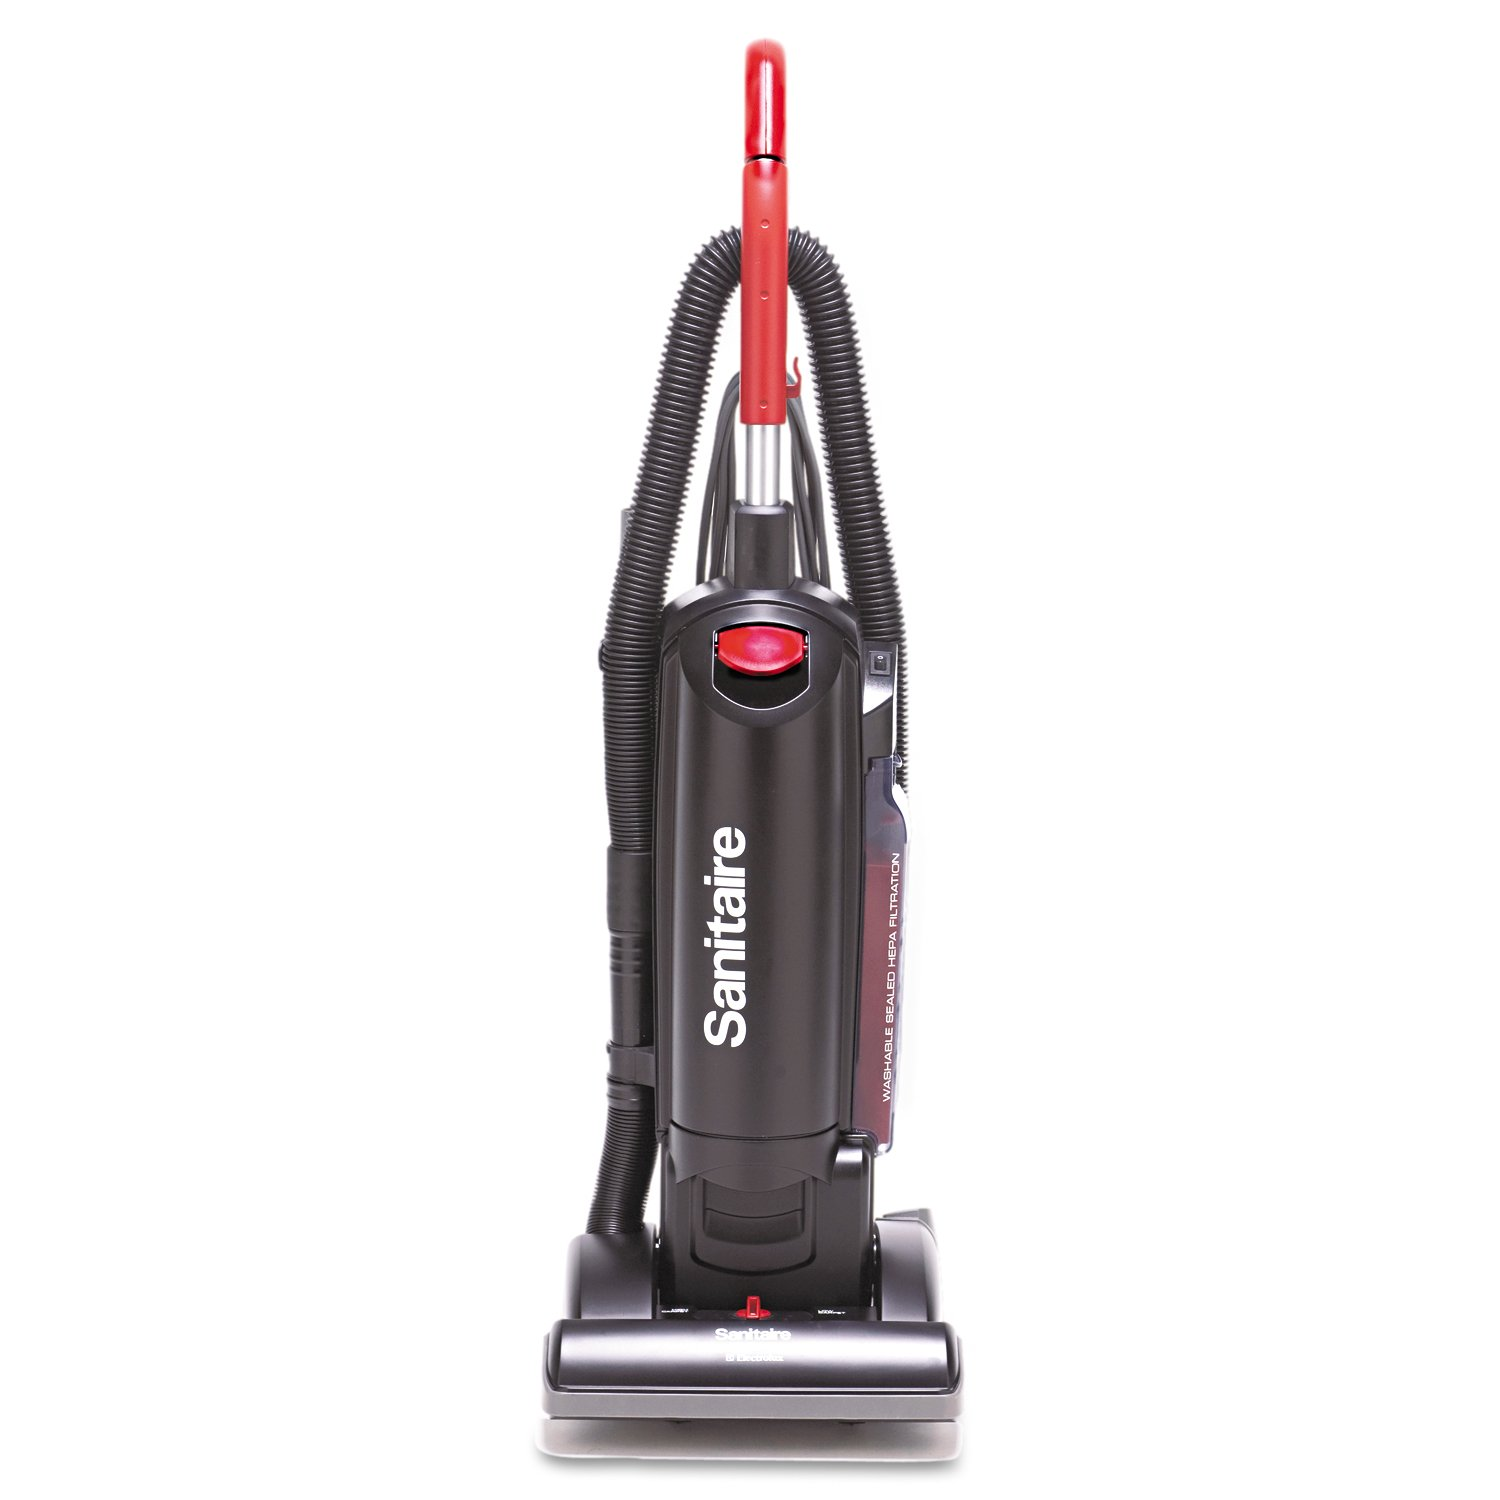 Sanitaire SC5713B: HEPA ™ Filtration Upright Vacuum by Sanitaire